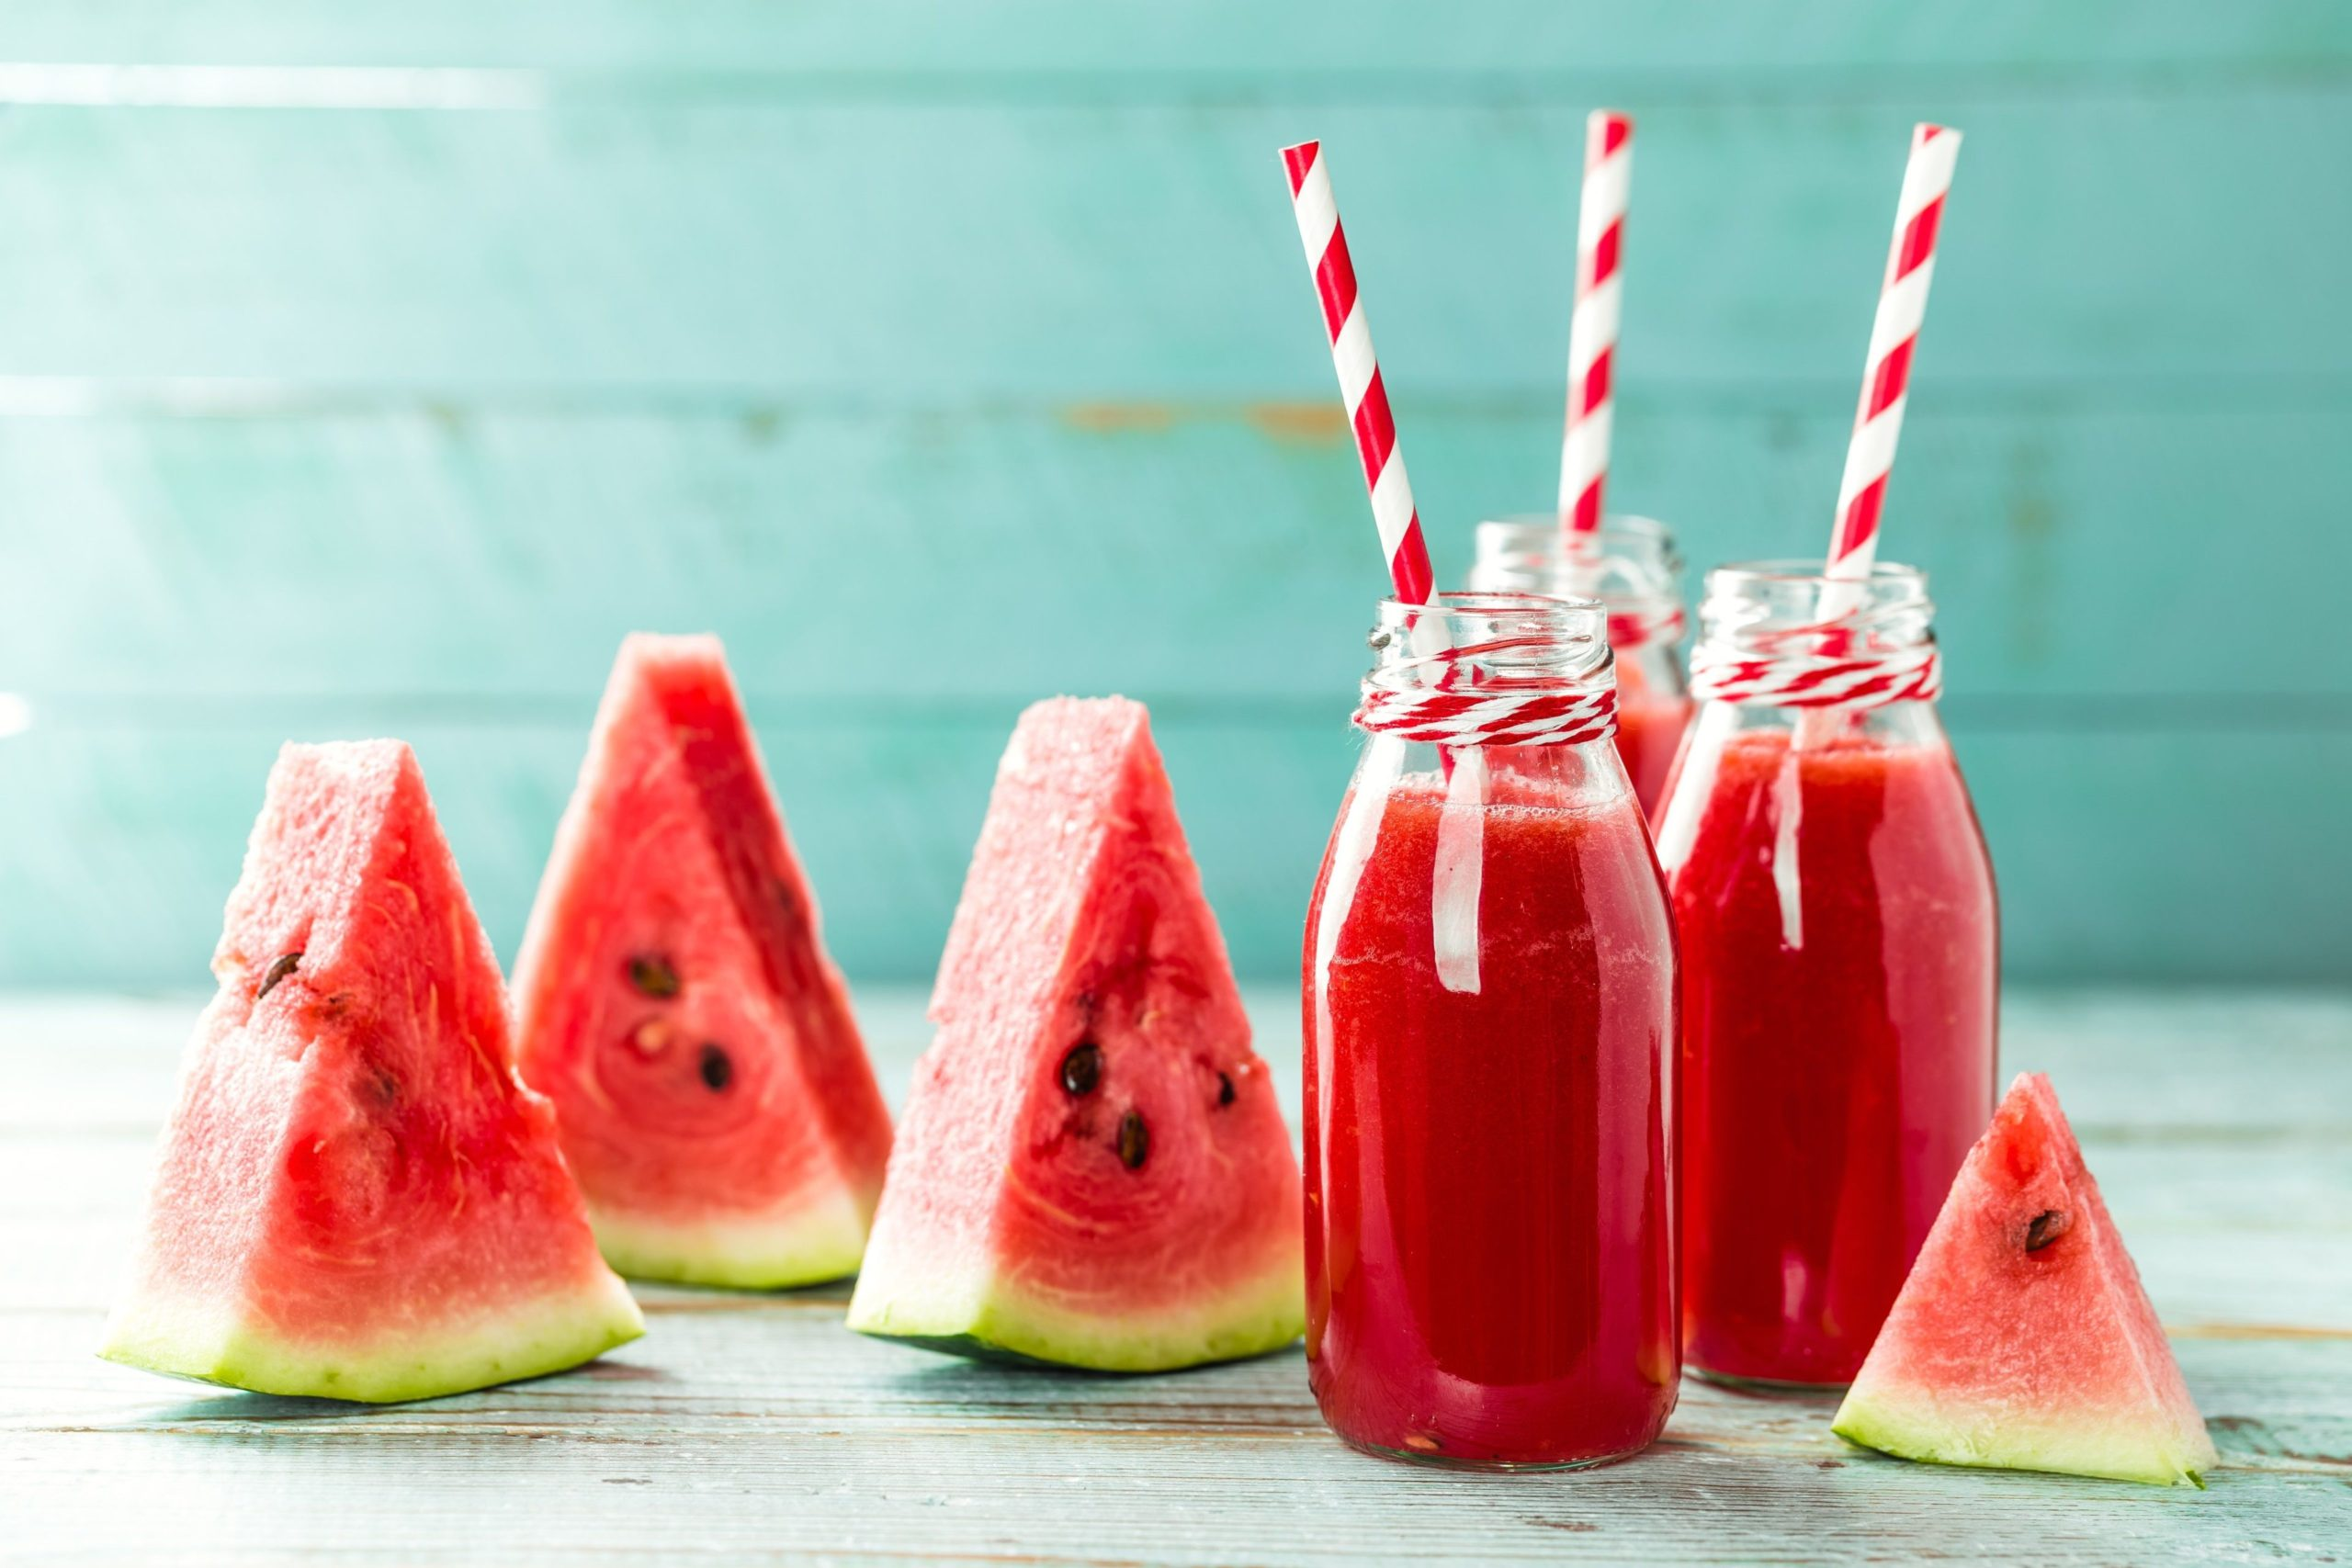 pictures of watermelon